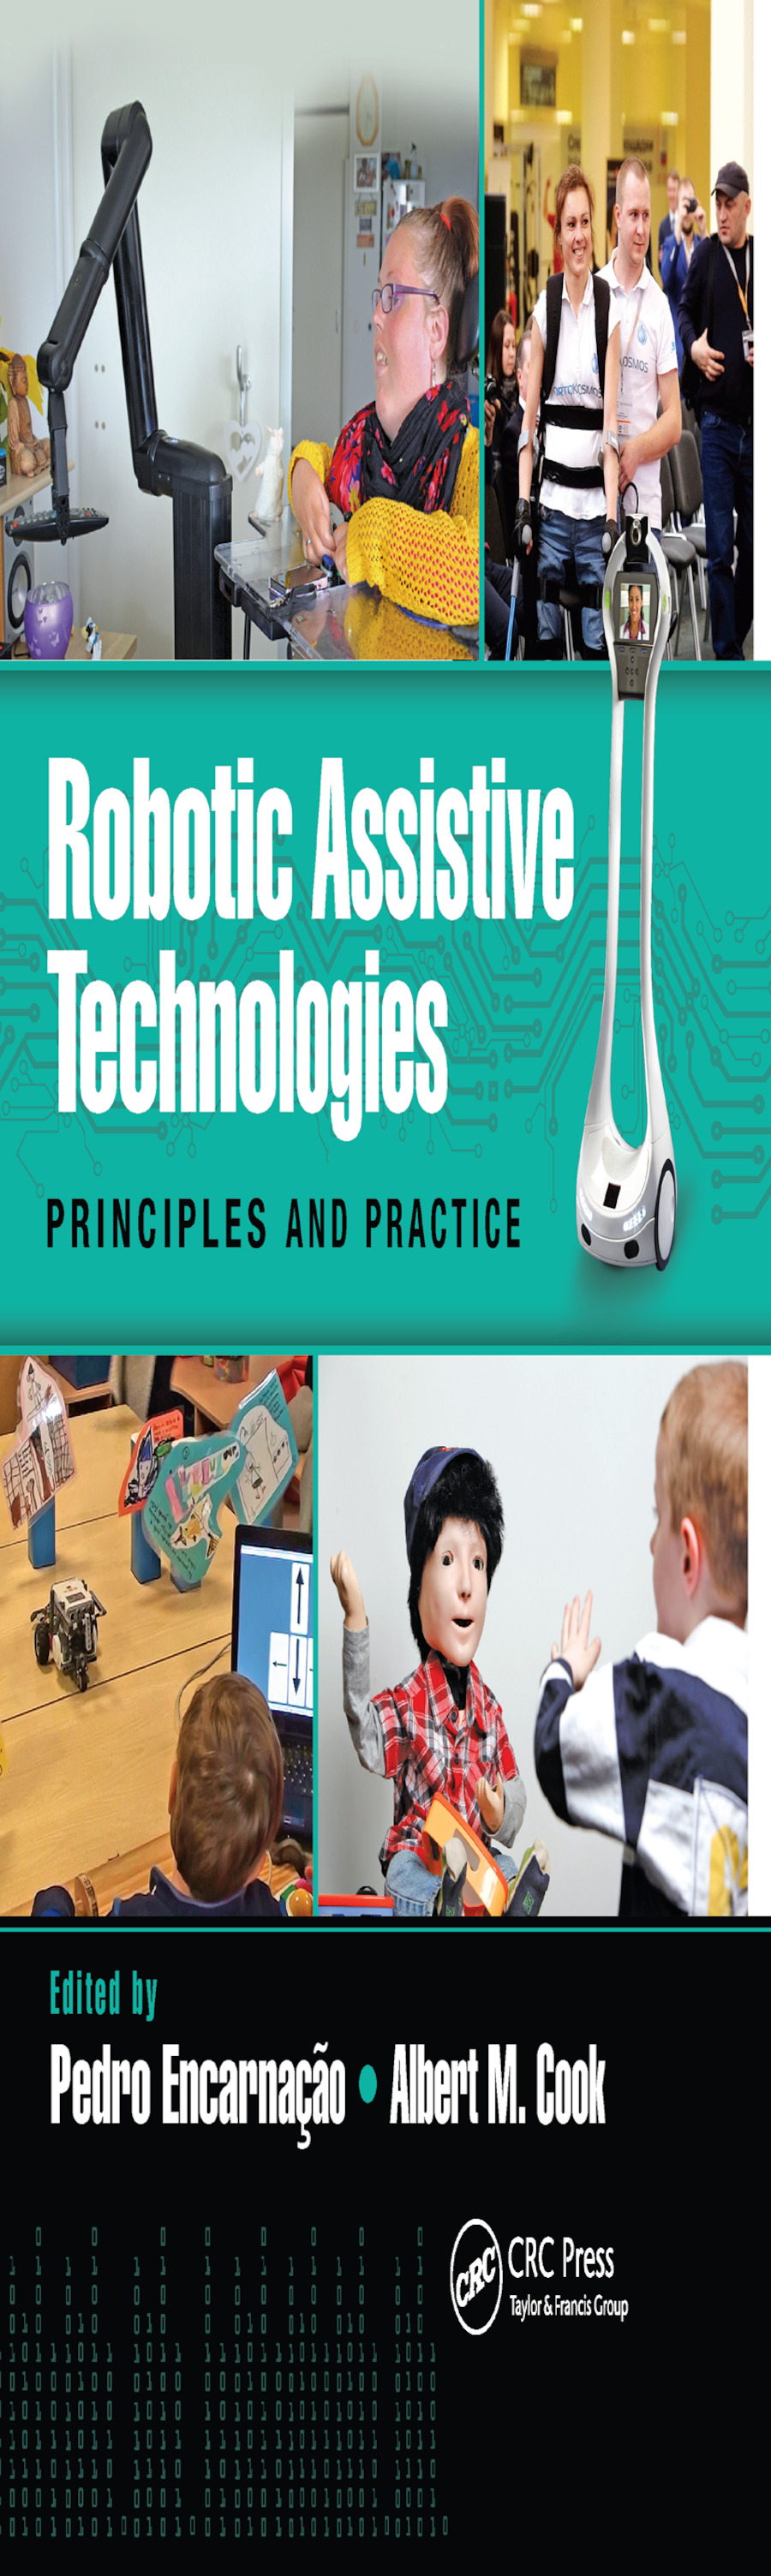 Robotic Assistive Technologies: Principles and Practice book cover